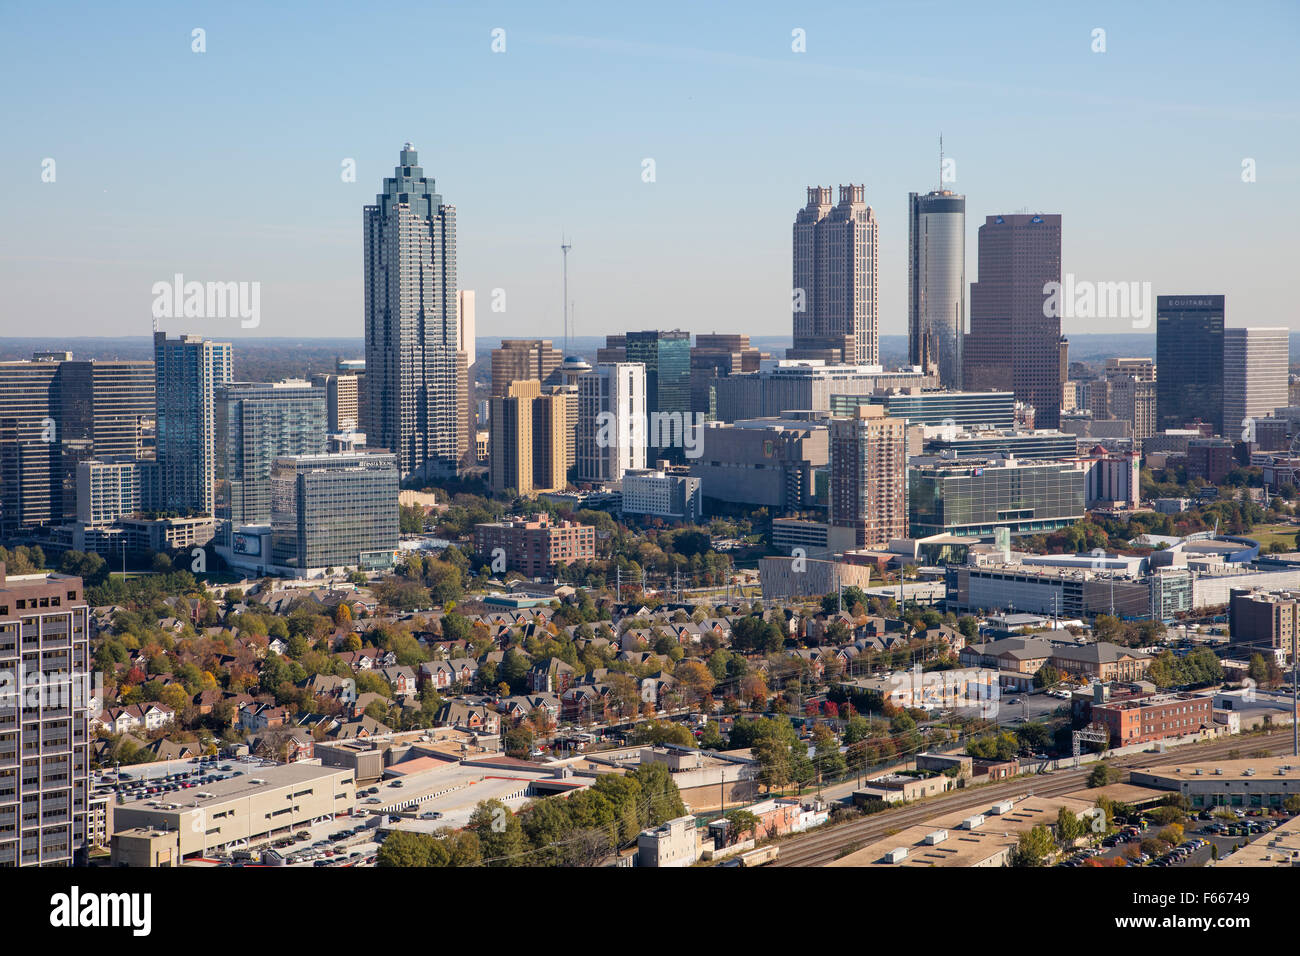 Aerial Photograph of Atlanta, Georgia USA taken on 11/10/2015 - Stock Image